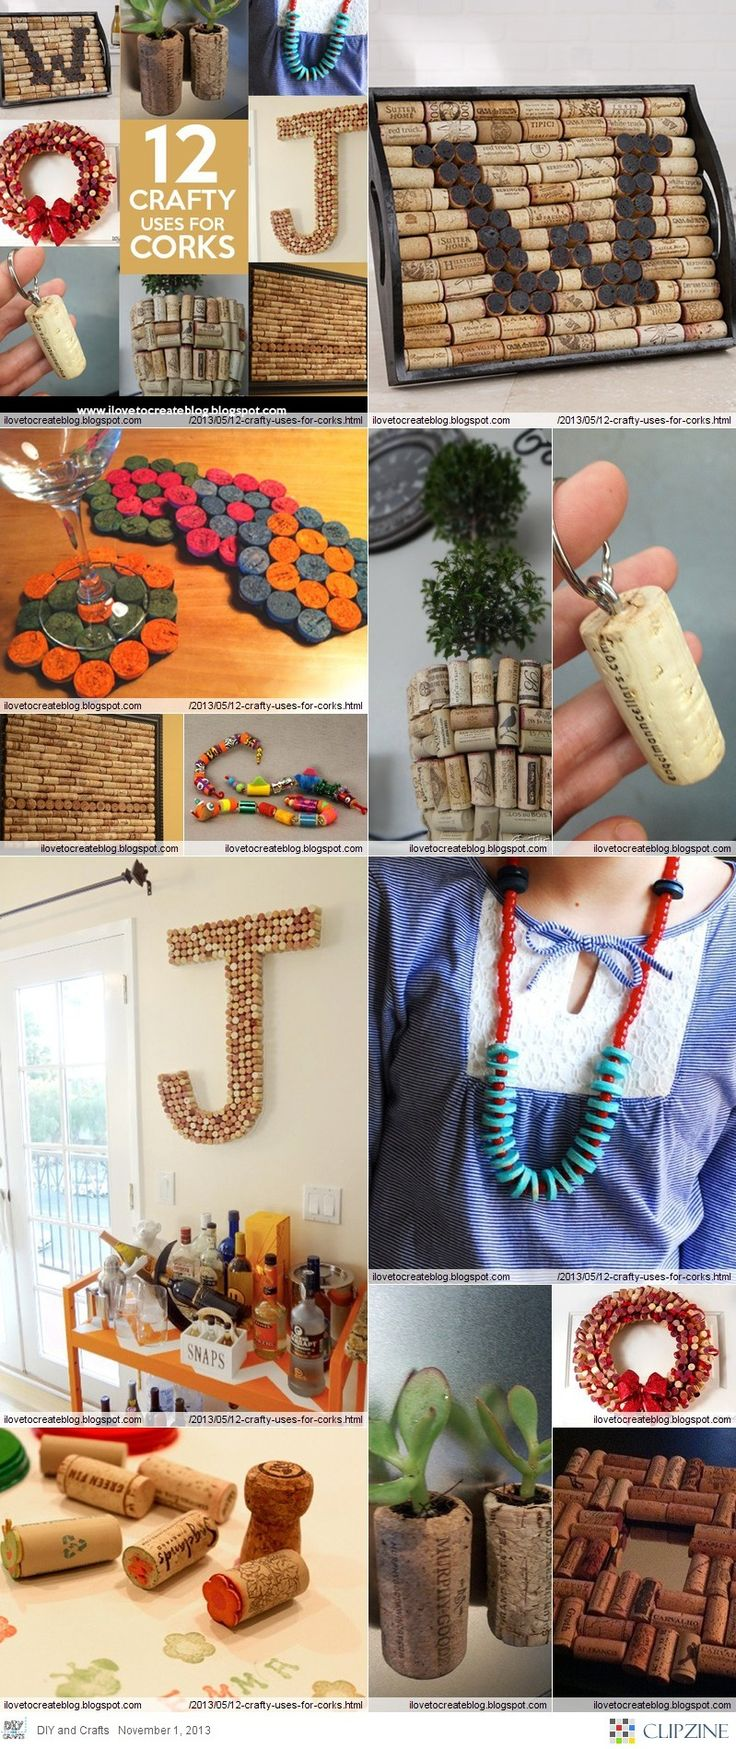 12 days of cork crafts!